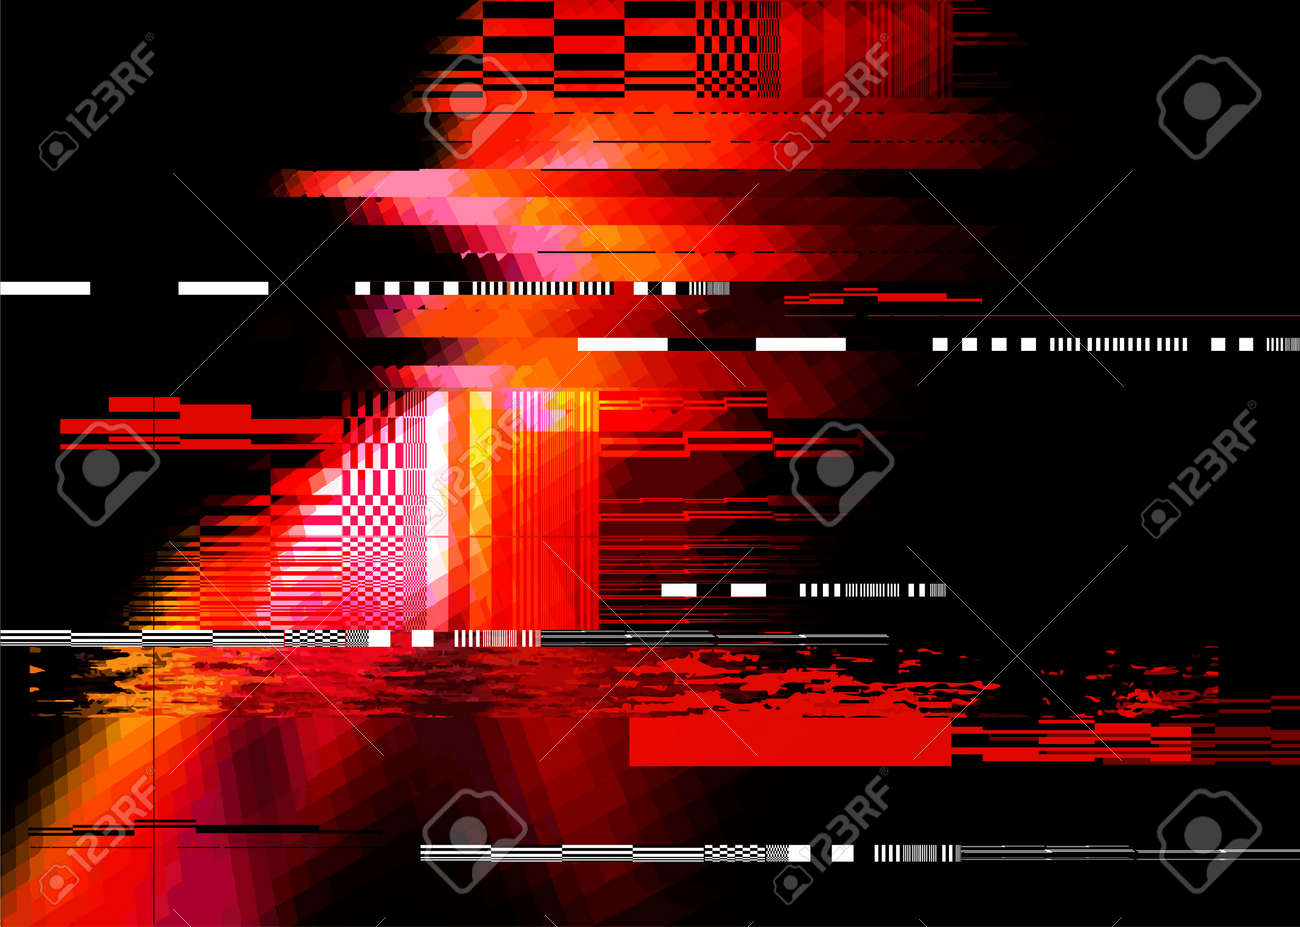 A redglitch noise distortion texture background. Vector illustration - 72483243